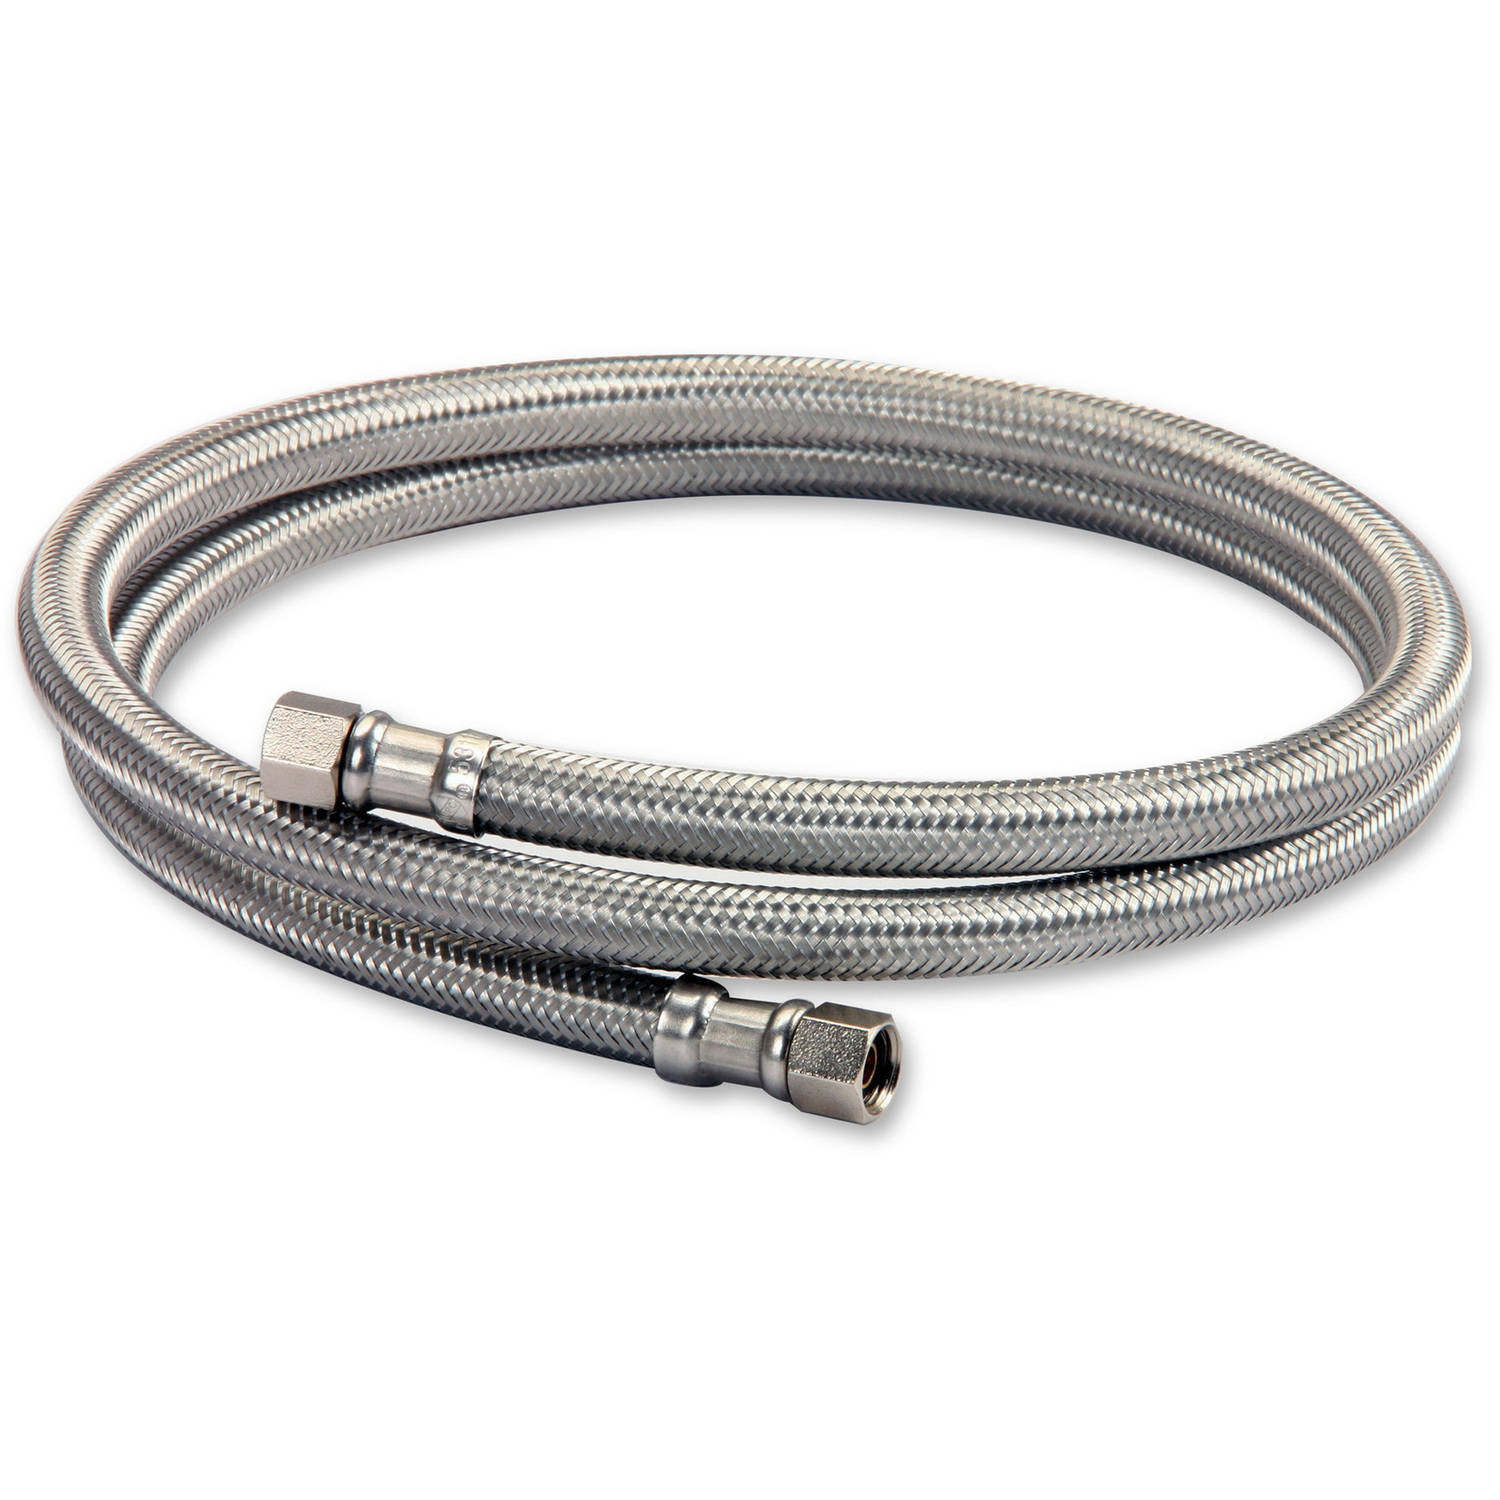 "Everflow Supplies 2662-NL Lead Free Stainless Steel Braided Ice Maker Supply Line with Two 1/4"" Fittings on Both Ends, 24"""